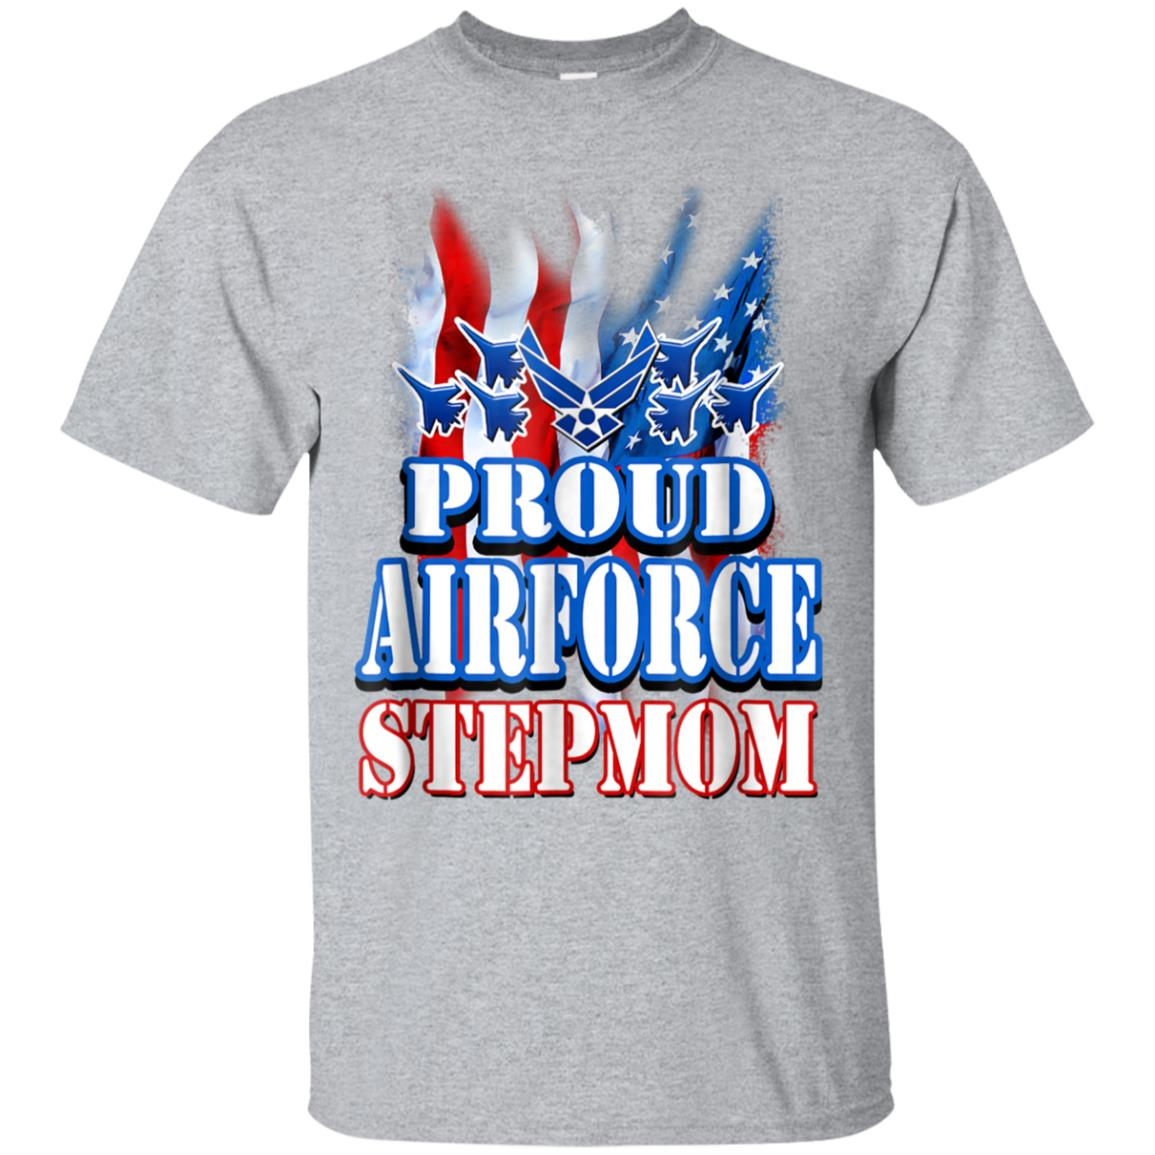 Proud Air Force Stepmom Shirt USA Flag Mothers Day Gift 99promocode